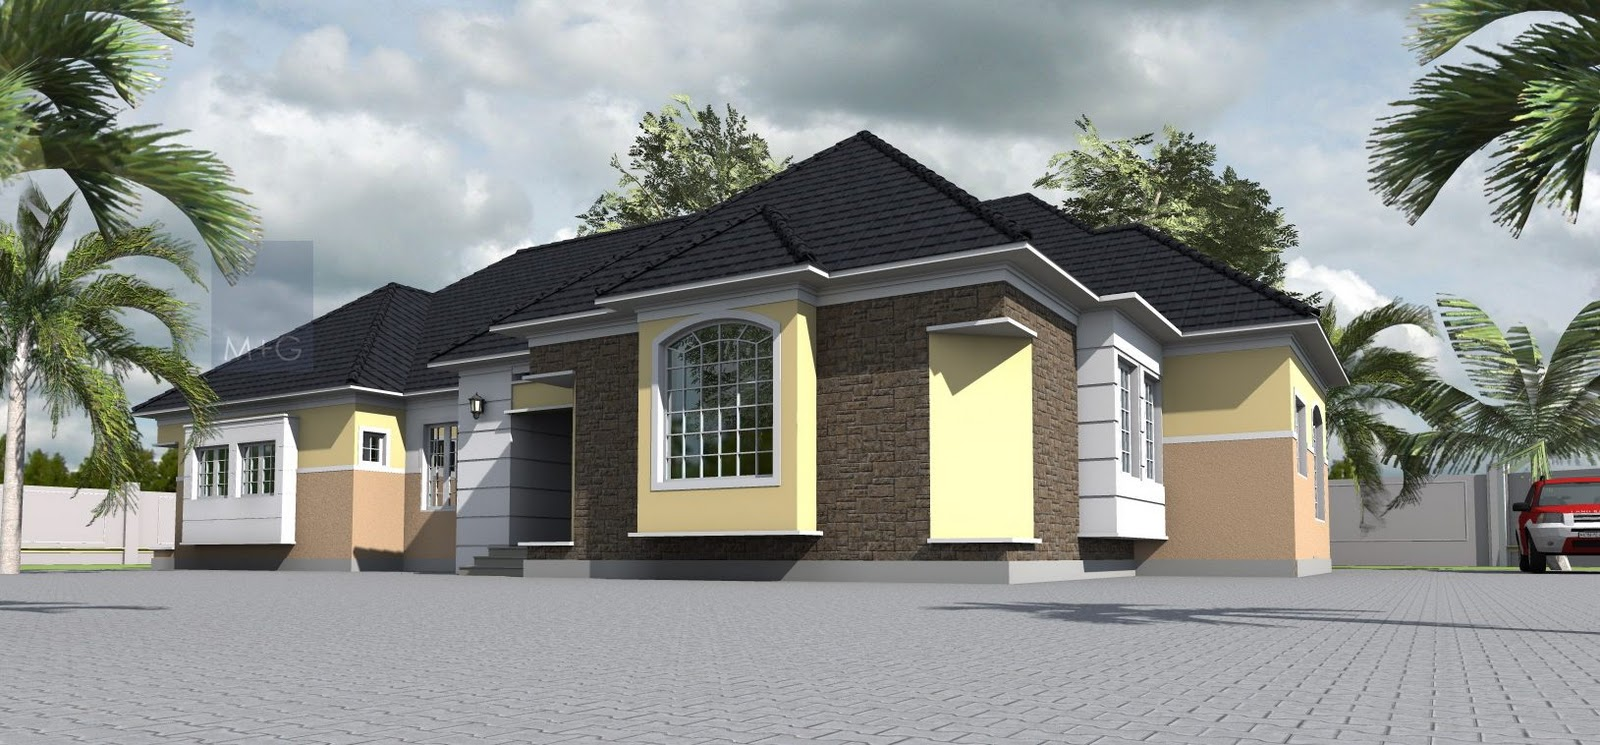 Contemporary nigerian residential architecture 4 bedroom for Modern residential house plans